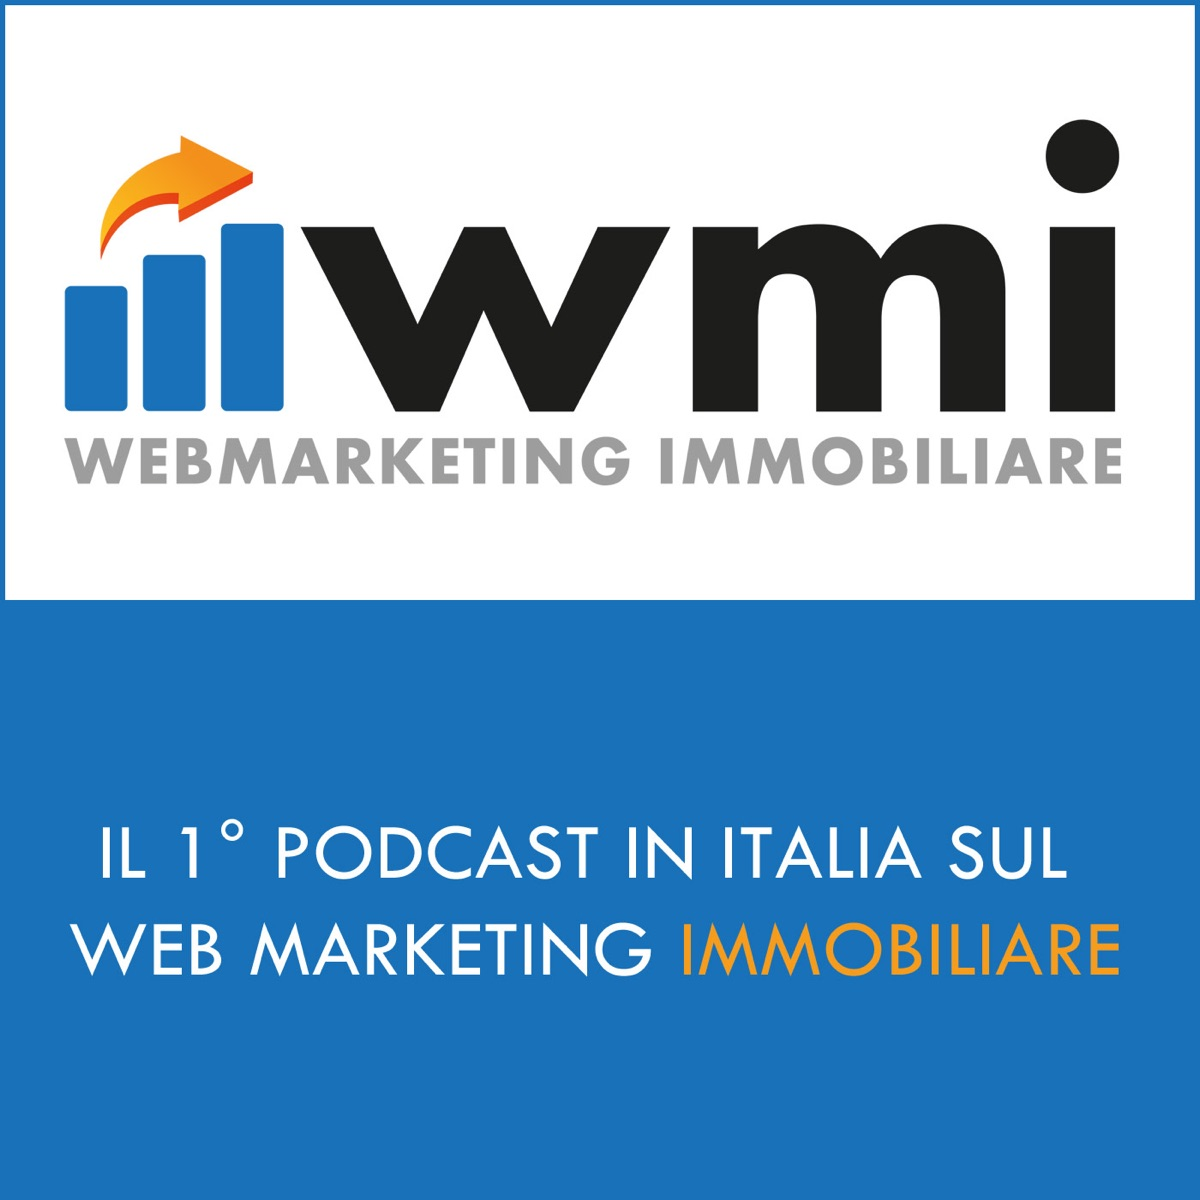 Web Marketing Immobiliare Podcast